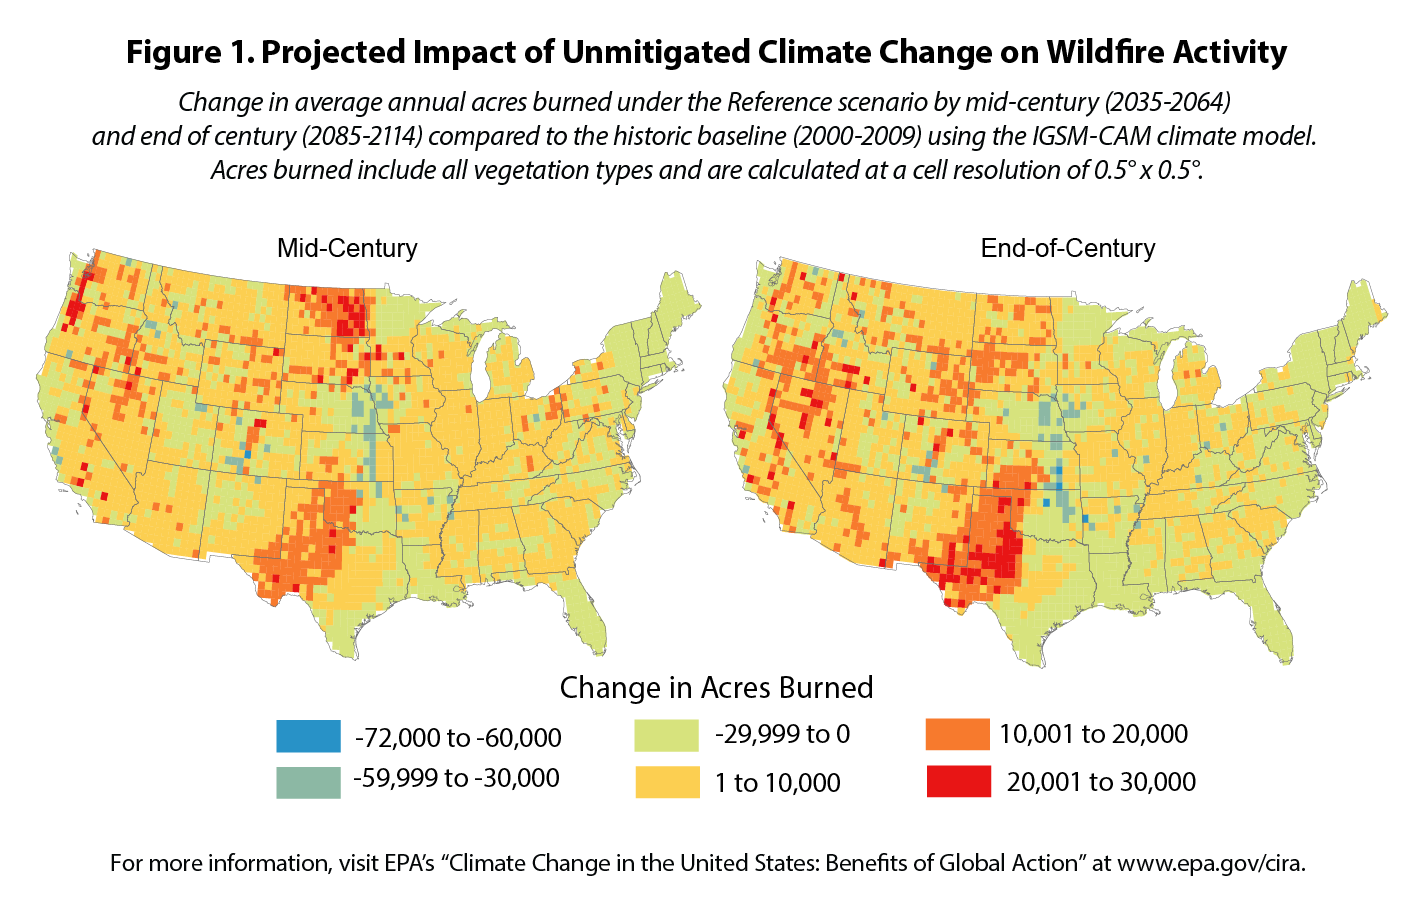 Climate Action Benefits Wildfire Climate Change In The United - Us wildfire activity map